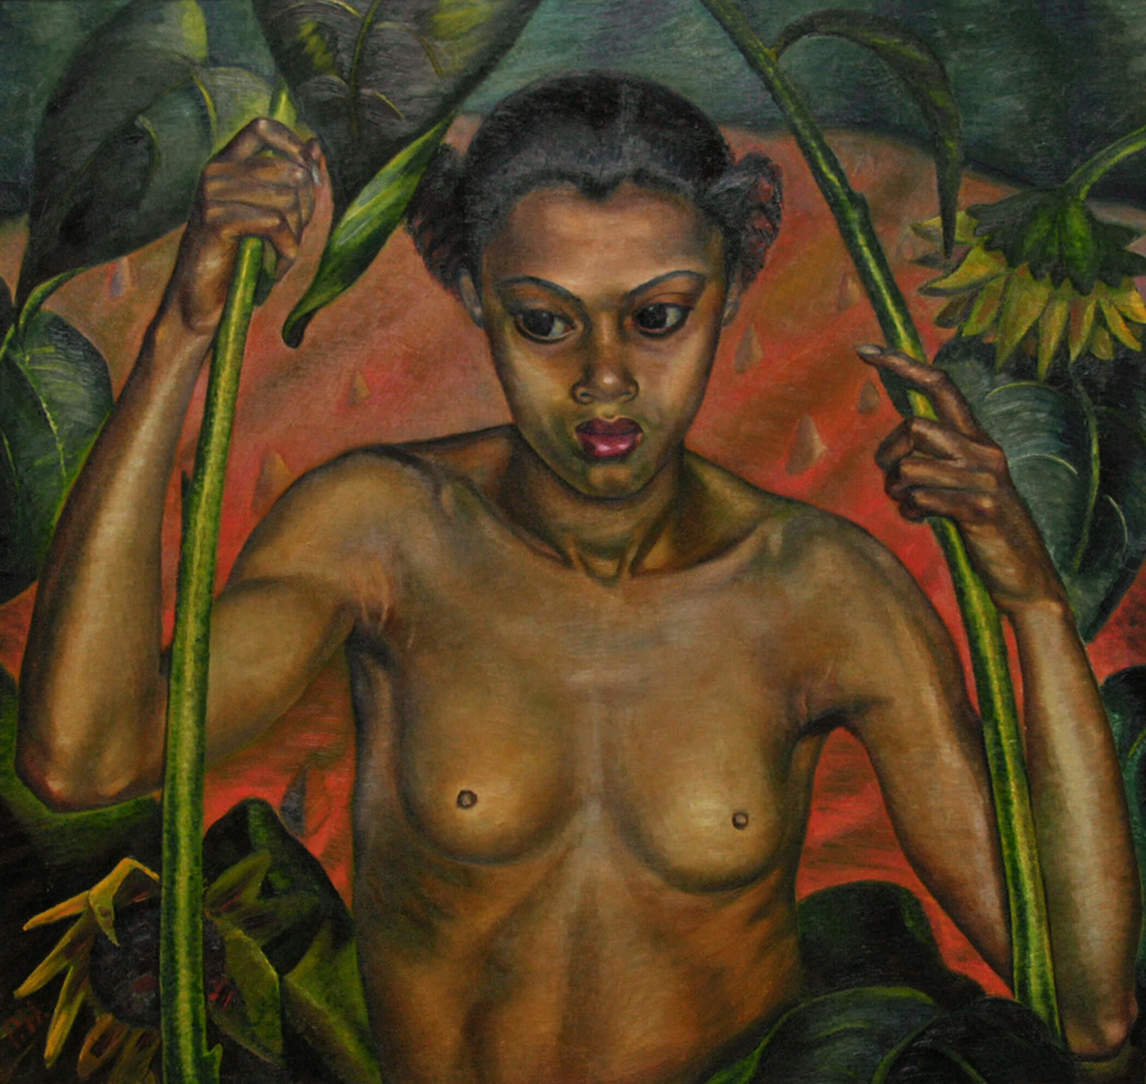 Art Canada Institute, Prudence Heward, Negress with Sunflowers, c. 1936